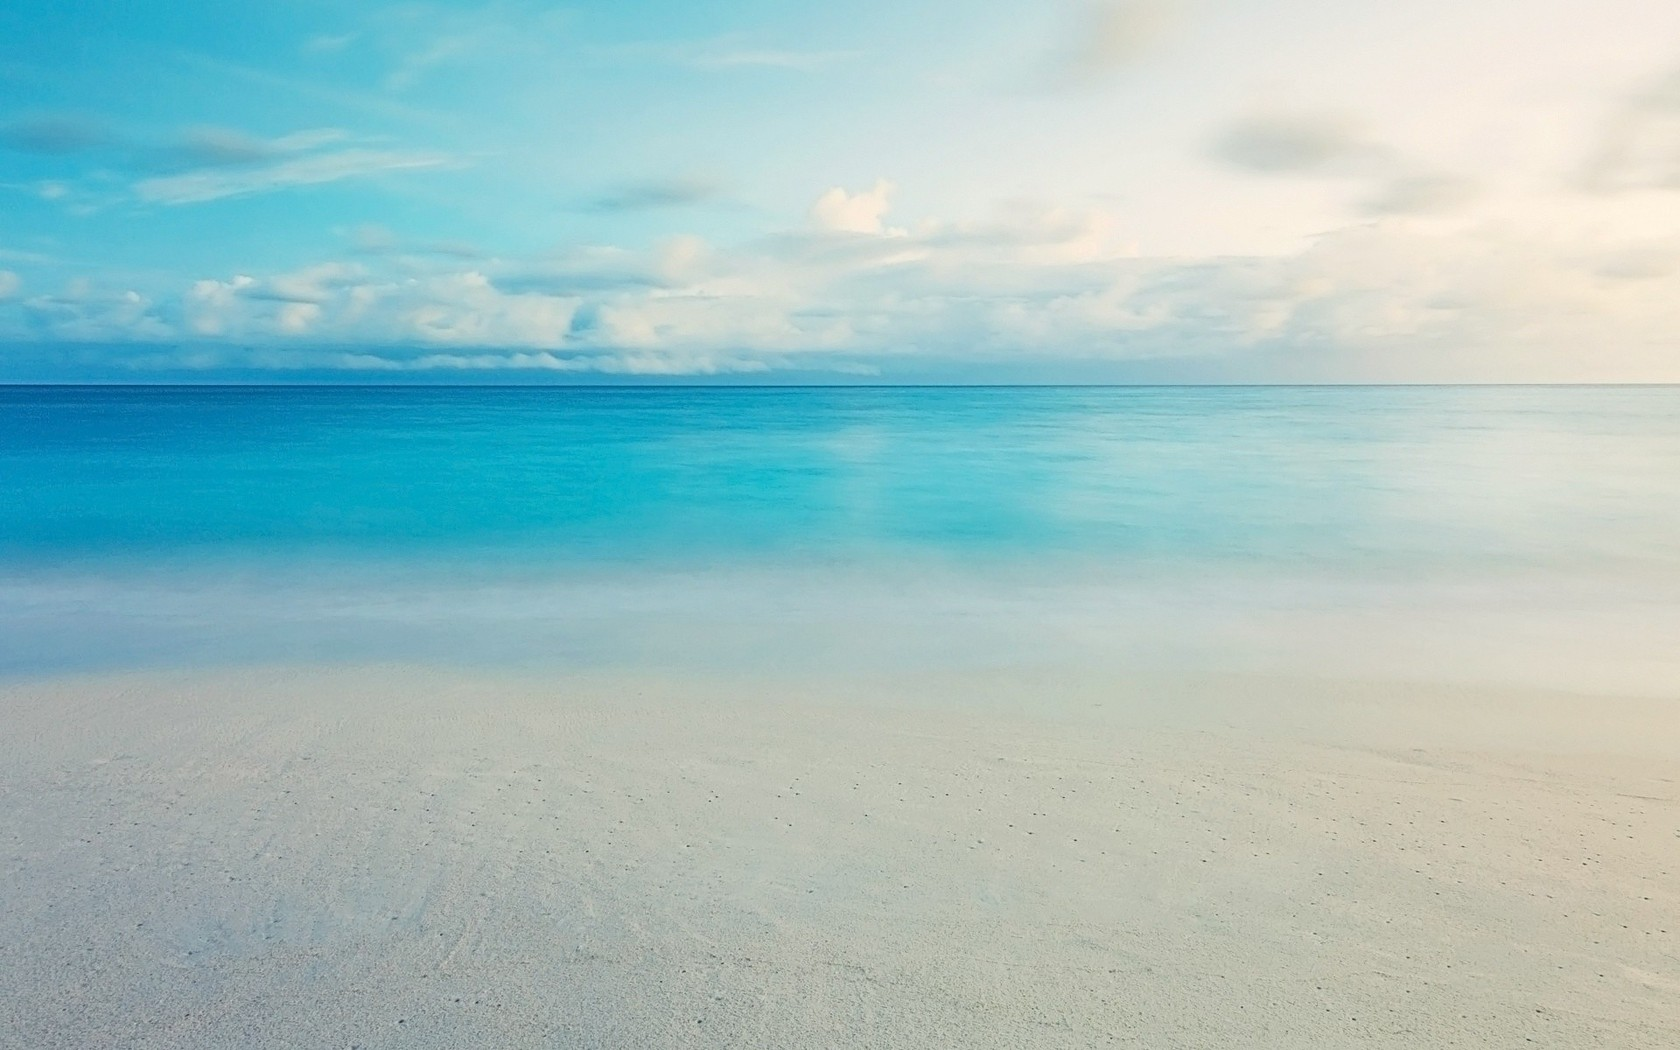 Calm blue ocean wallpaper #14485